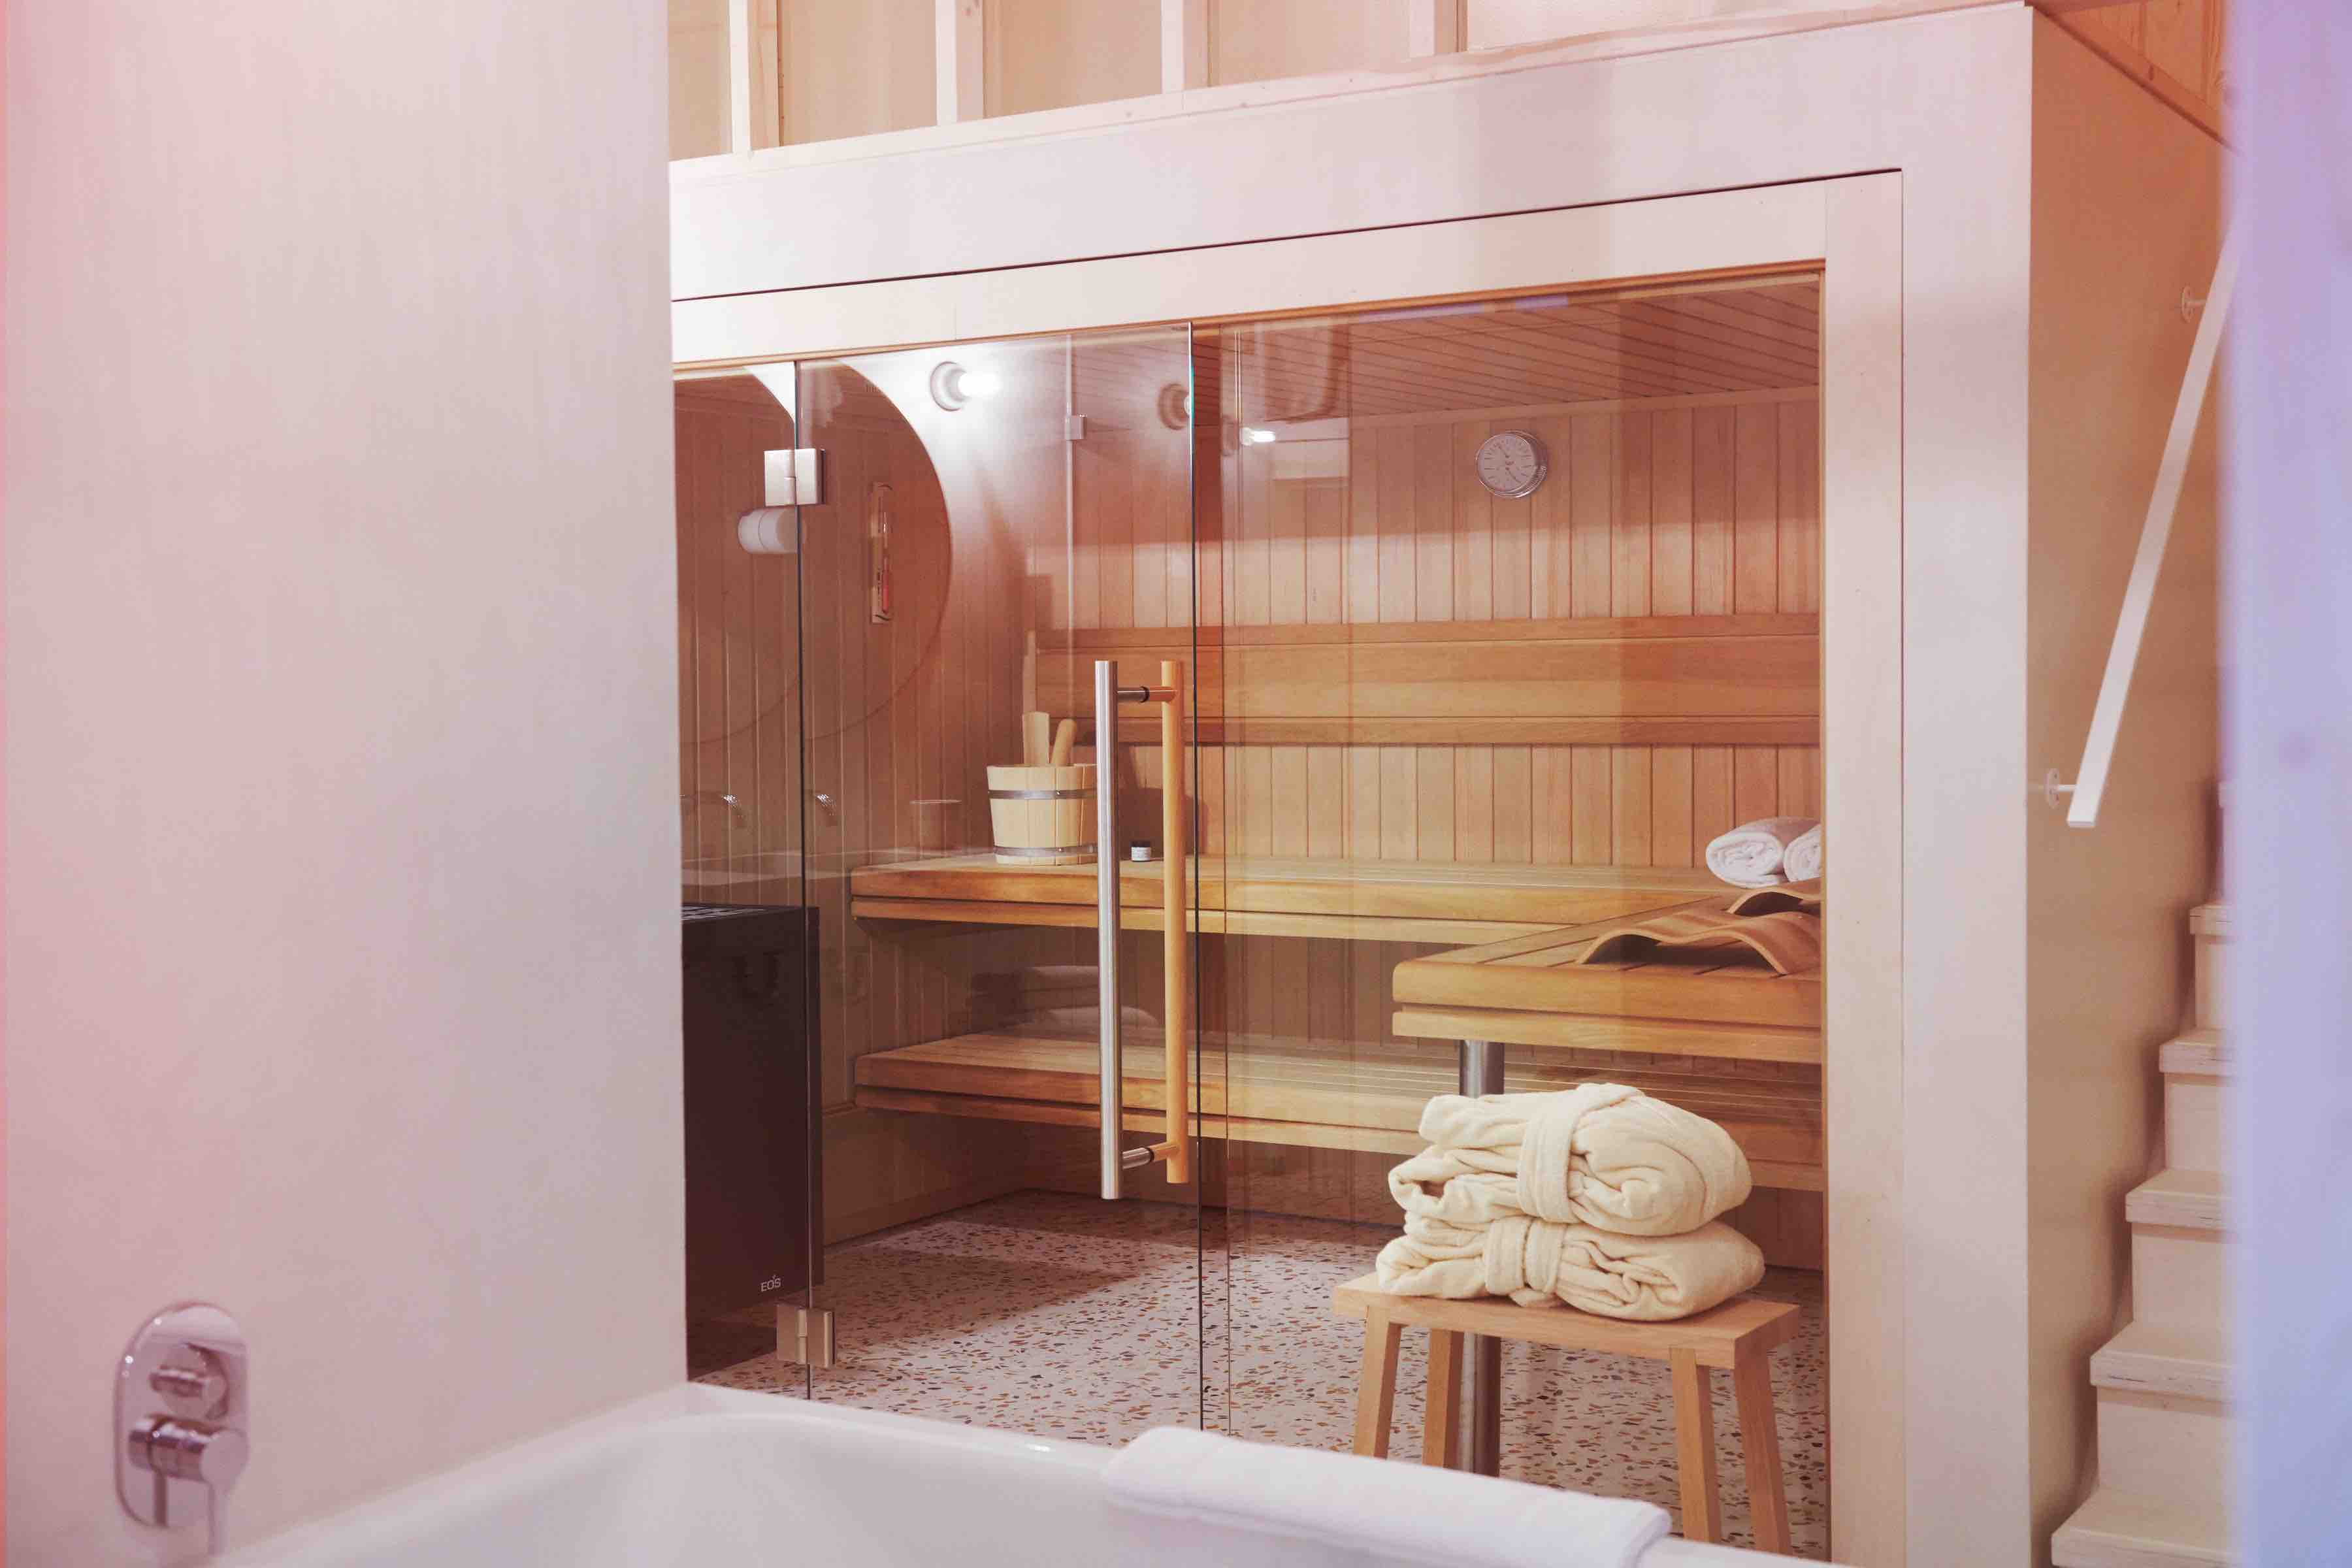 Michelberger Hotel room with built in sauna